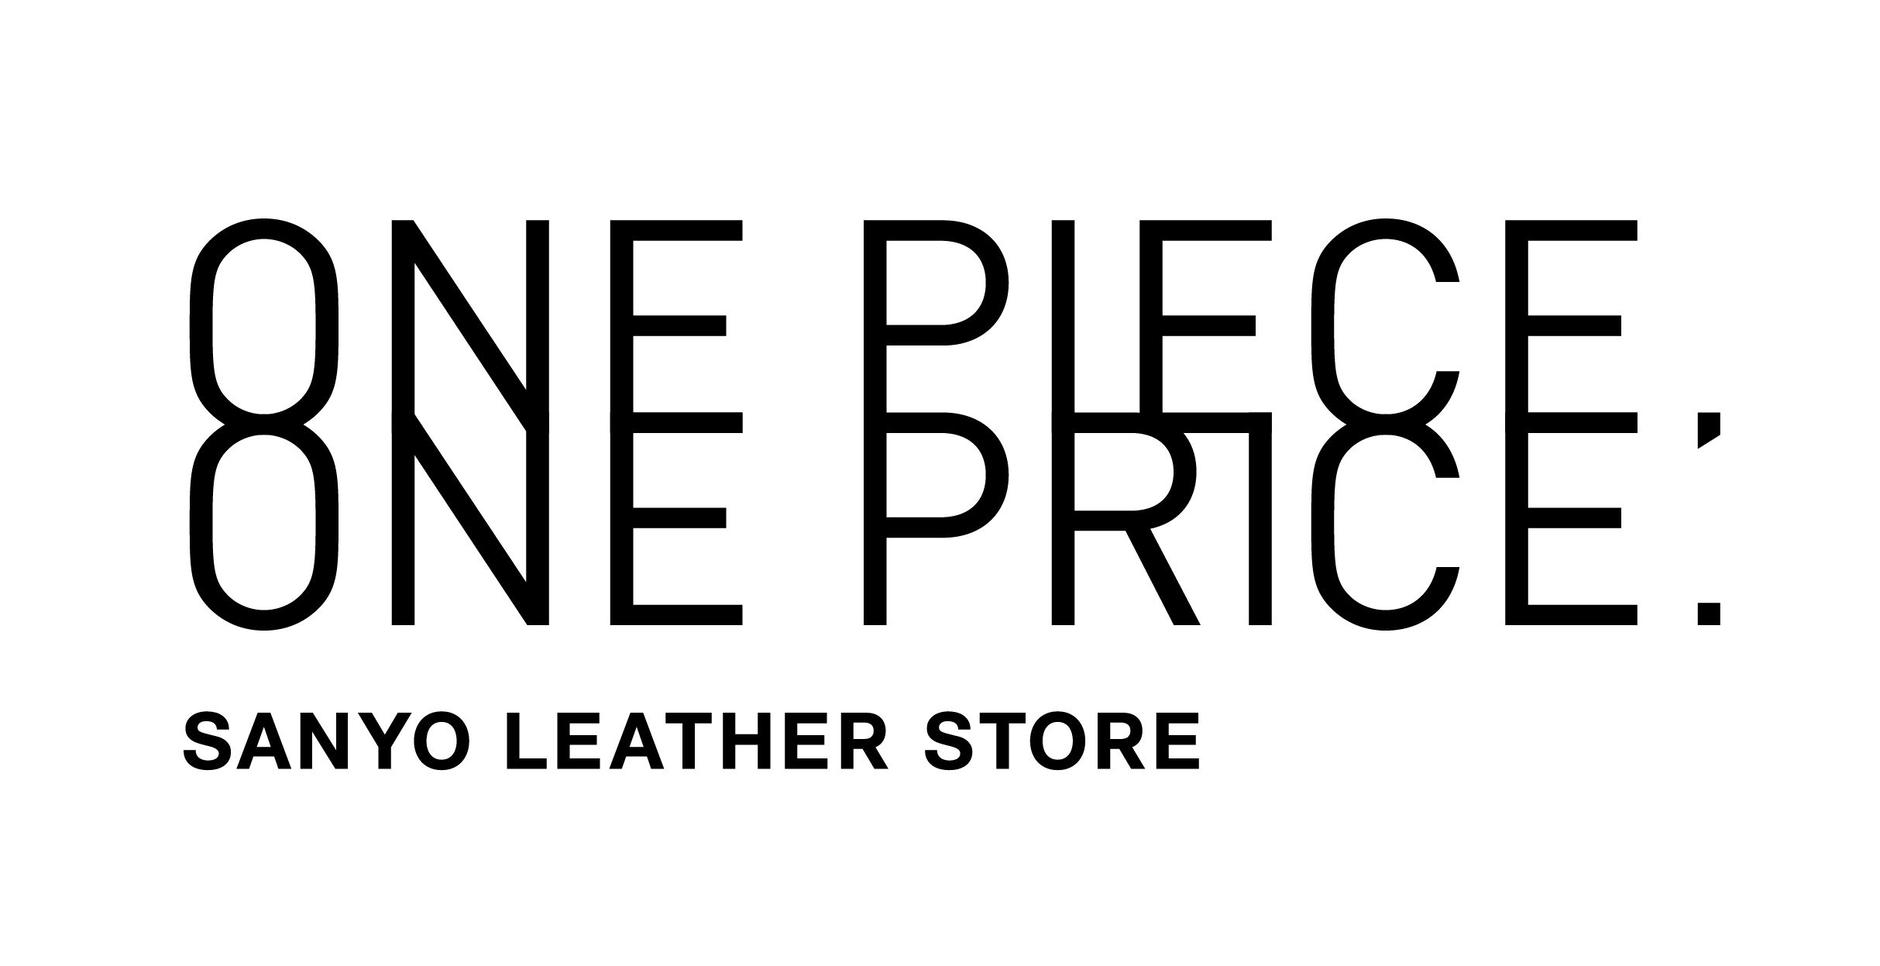 ONE PIECE, ONE PRICE. SANYO LEATHER STORE